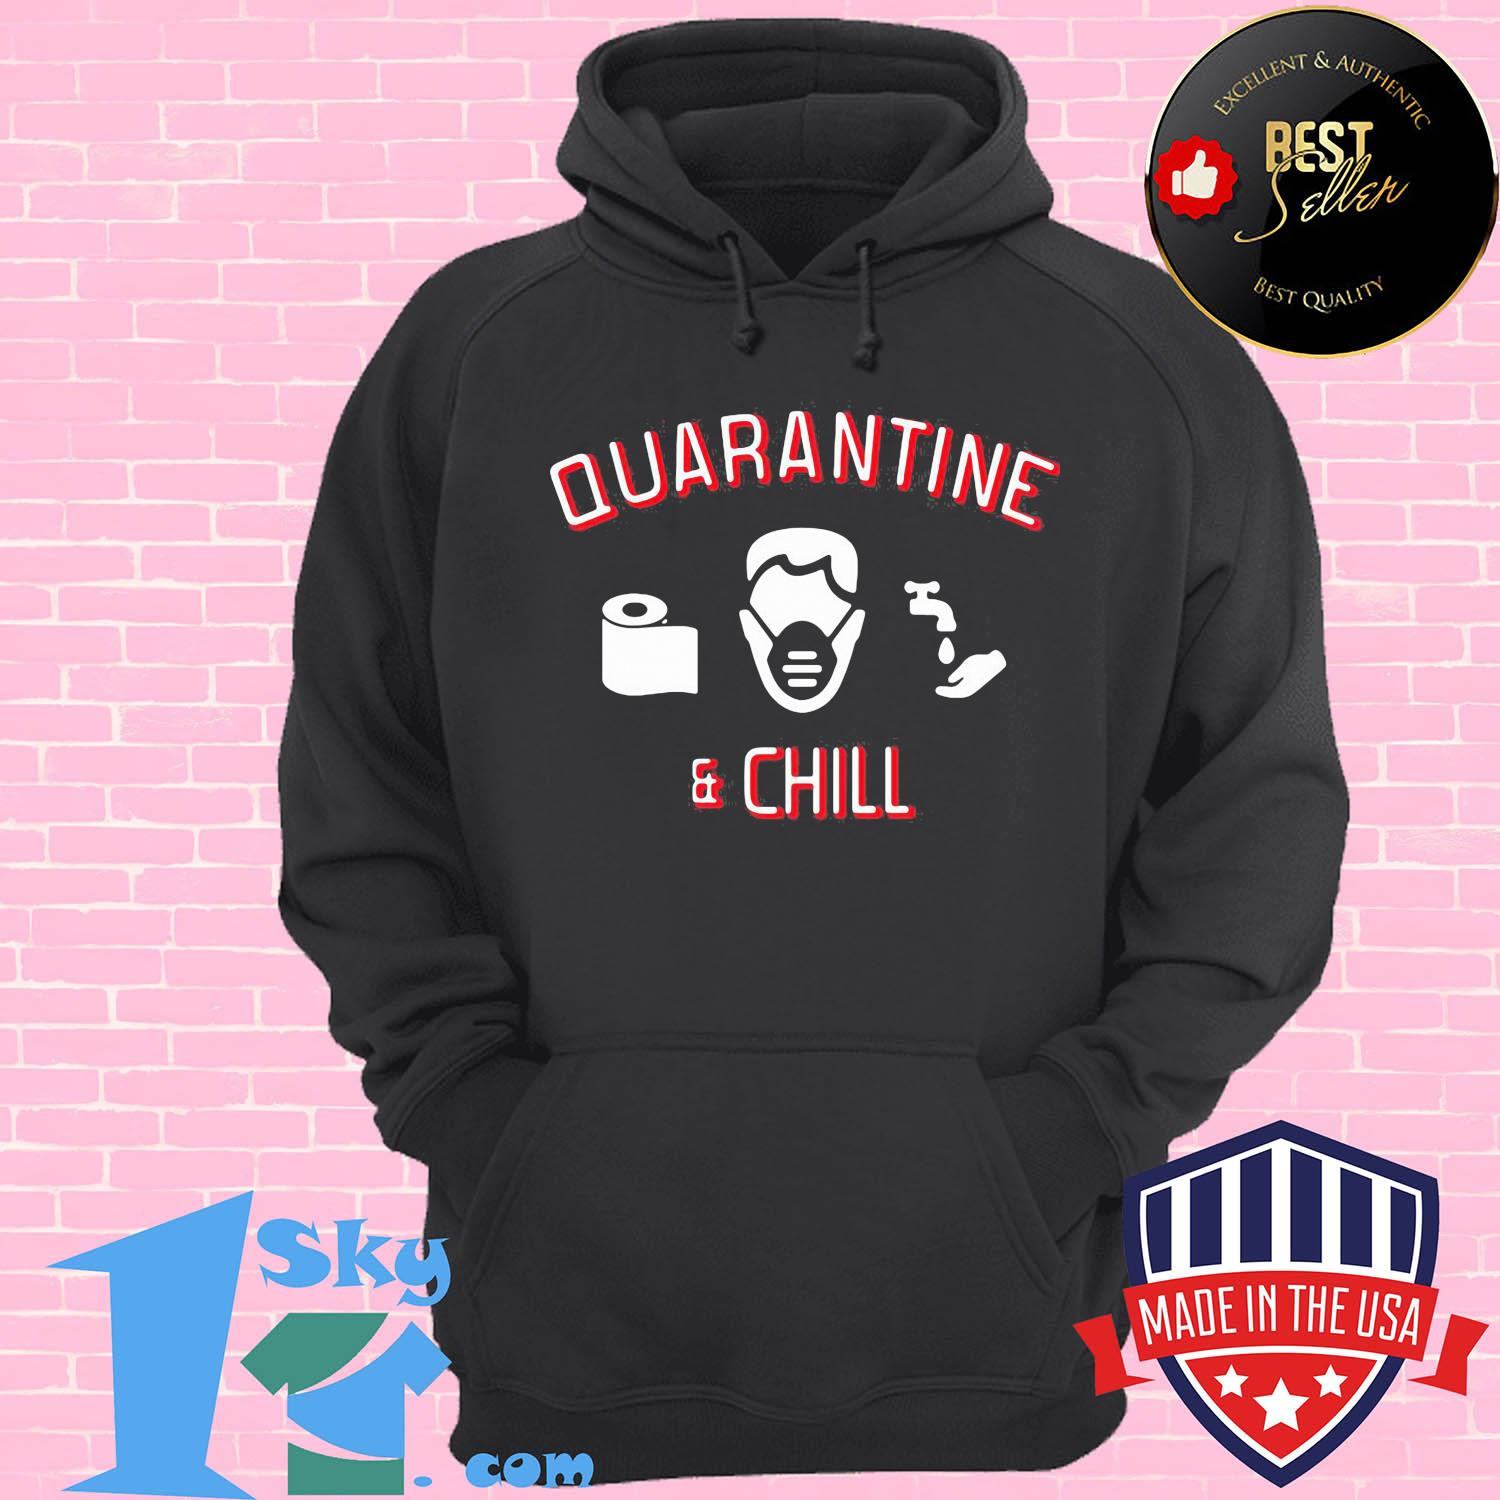 Quarantine and chill toilet paper Corona Covid-19 s Hoodie